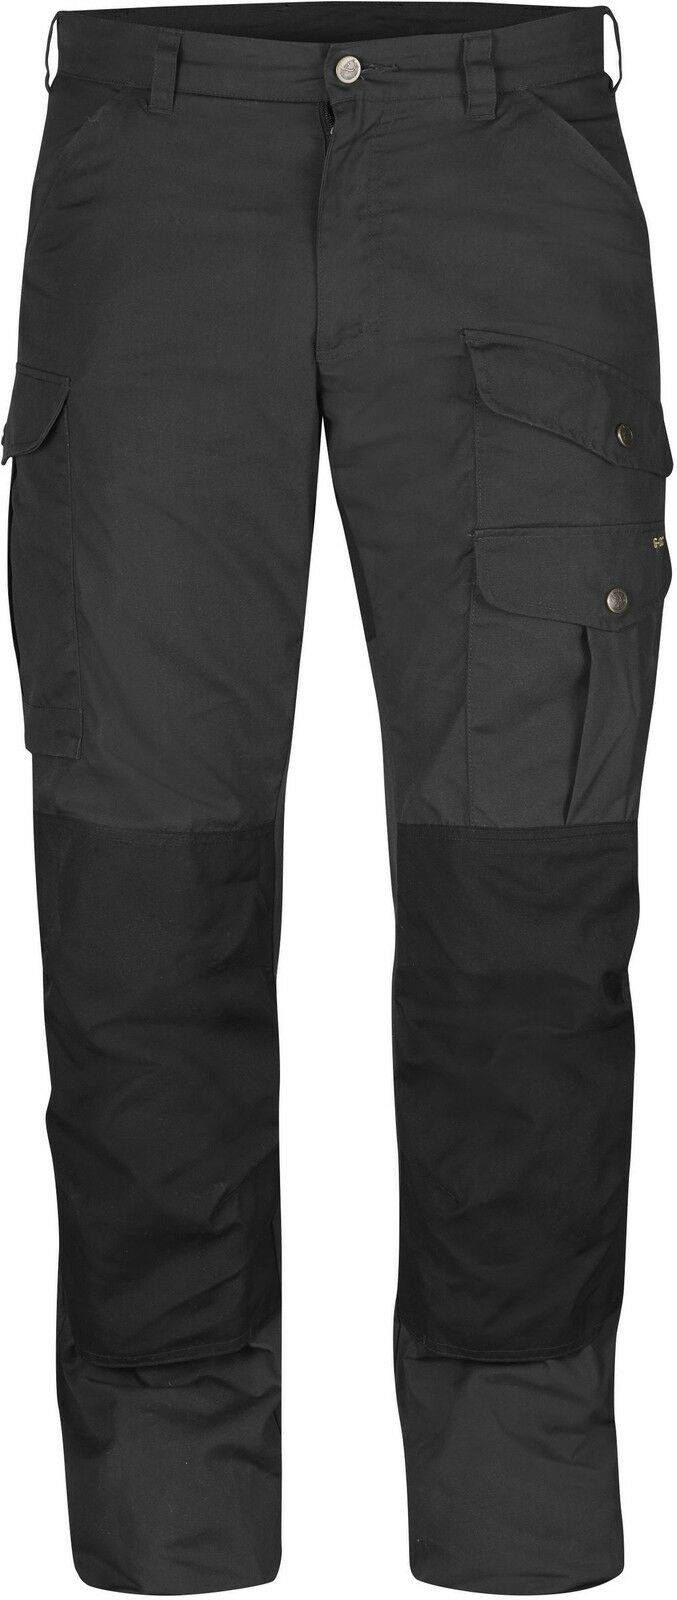 Fjäll Räven Barents pro Winter Outdoor Trousers Hiking 81144 Gr. 48